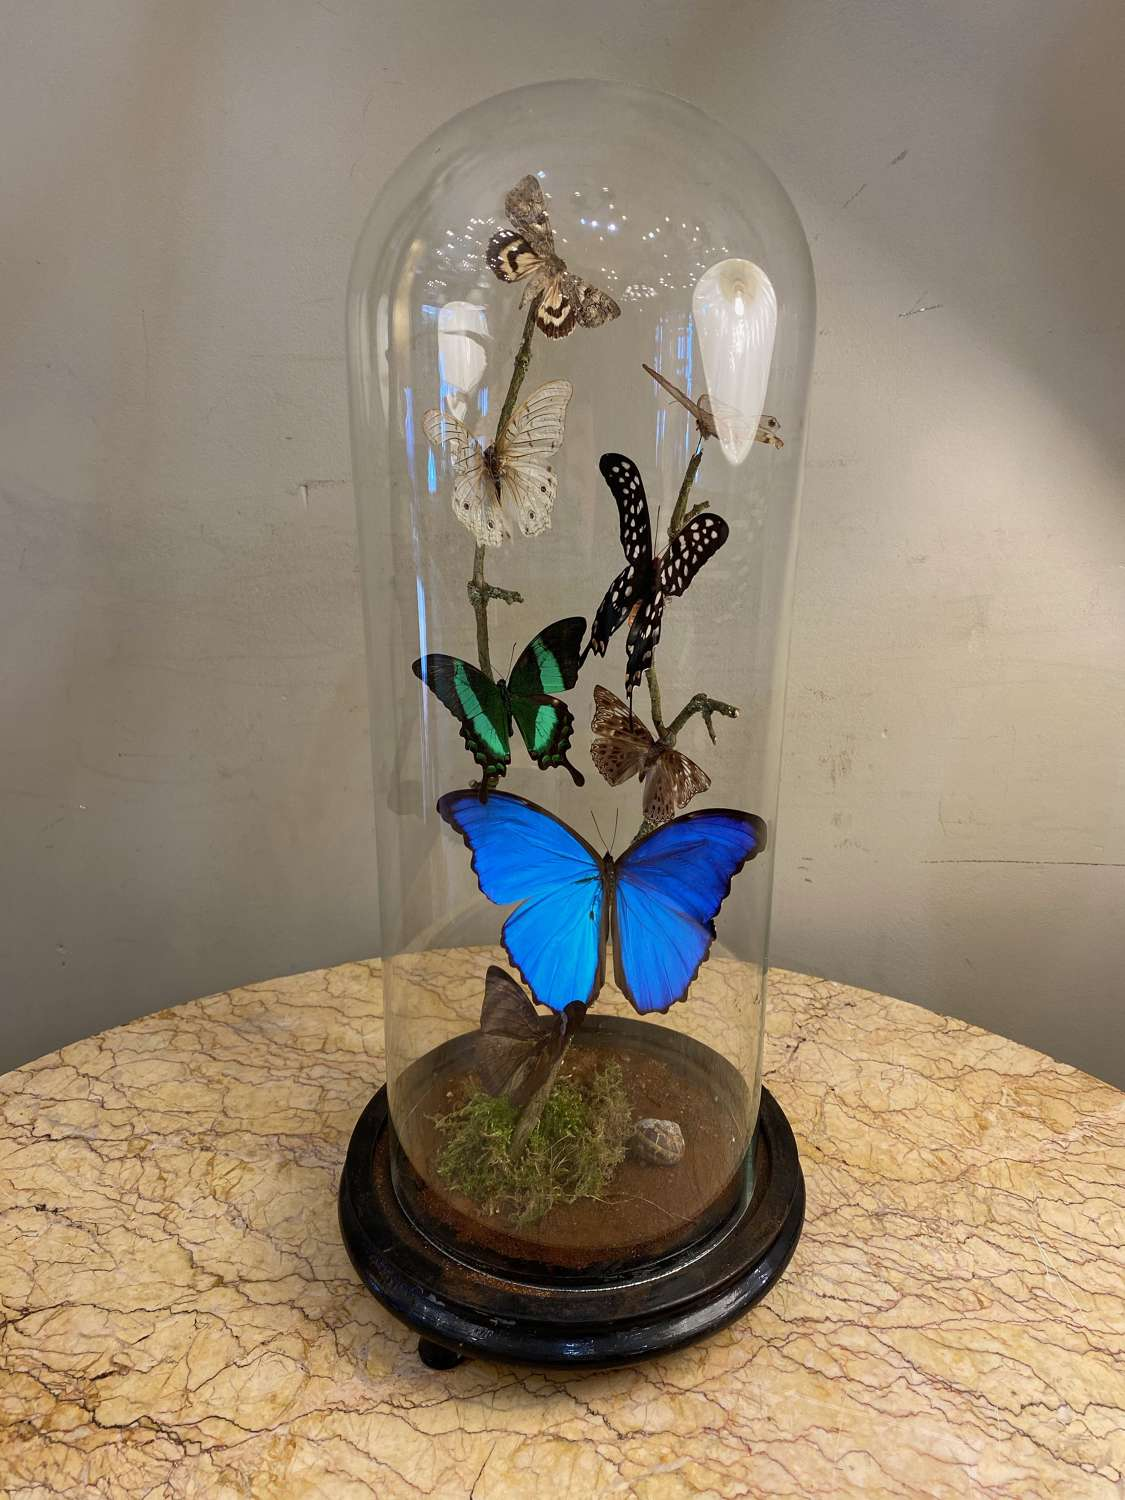 C1890 Glass Dome with Mounted Butterfly's